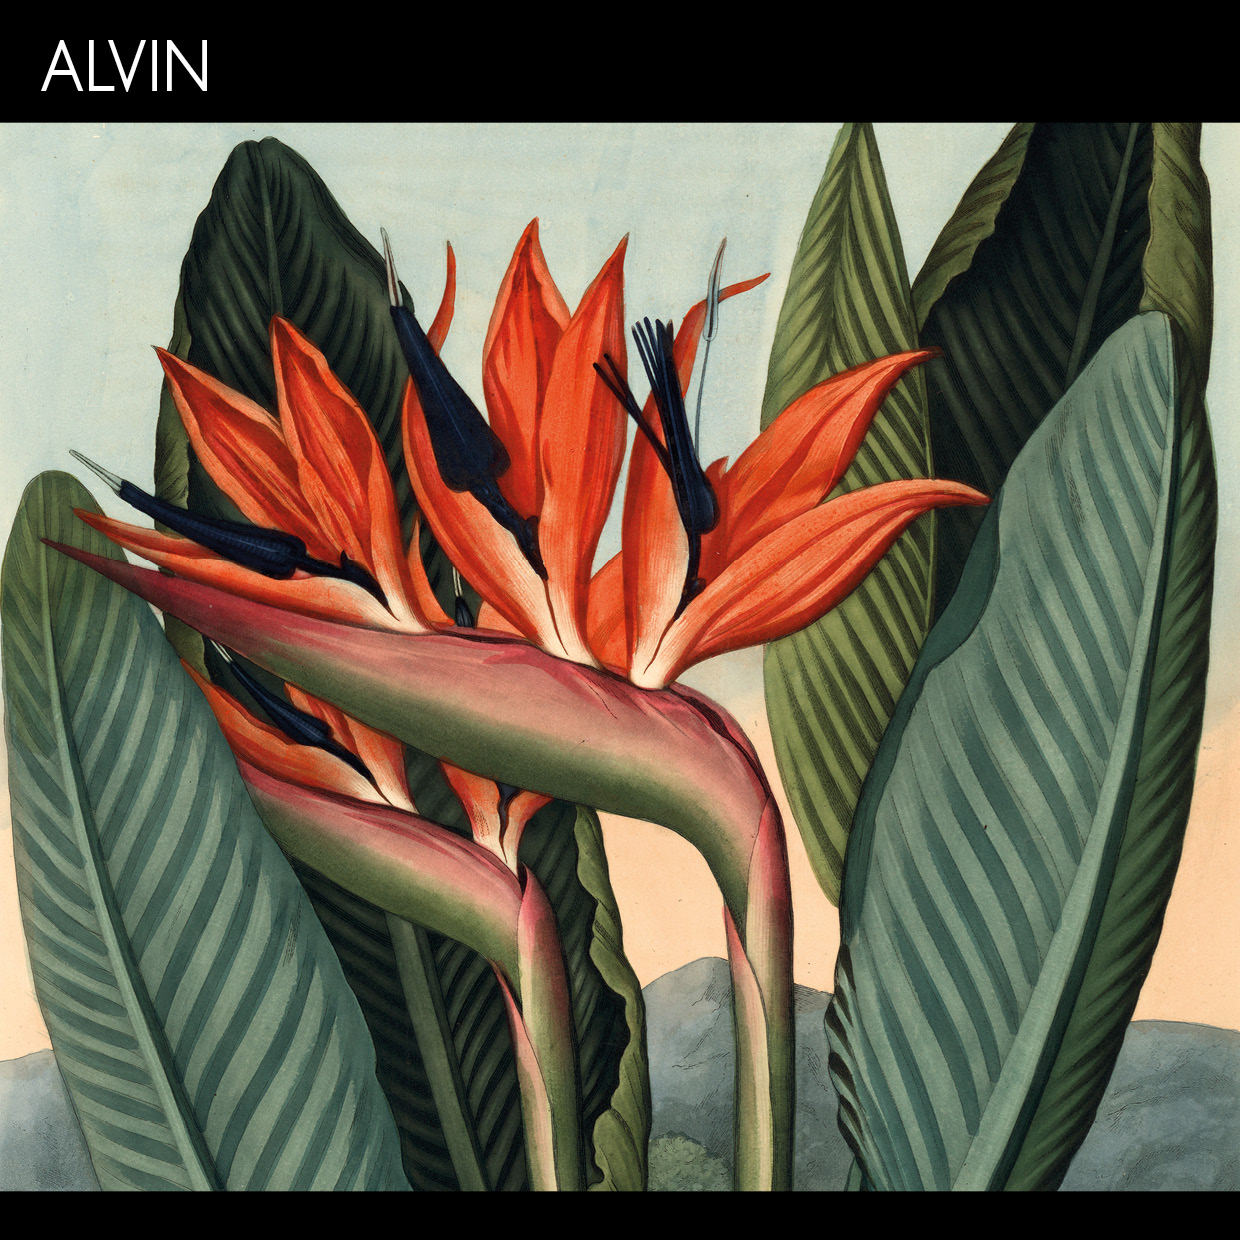 a red flower with pointy leaves and the logo fro database Alvin